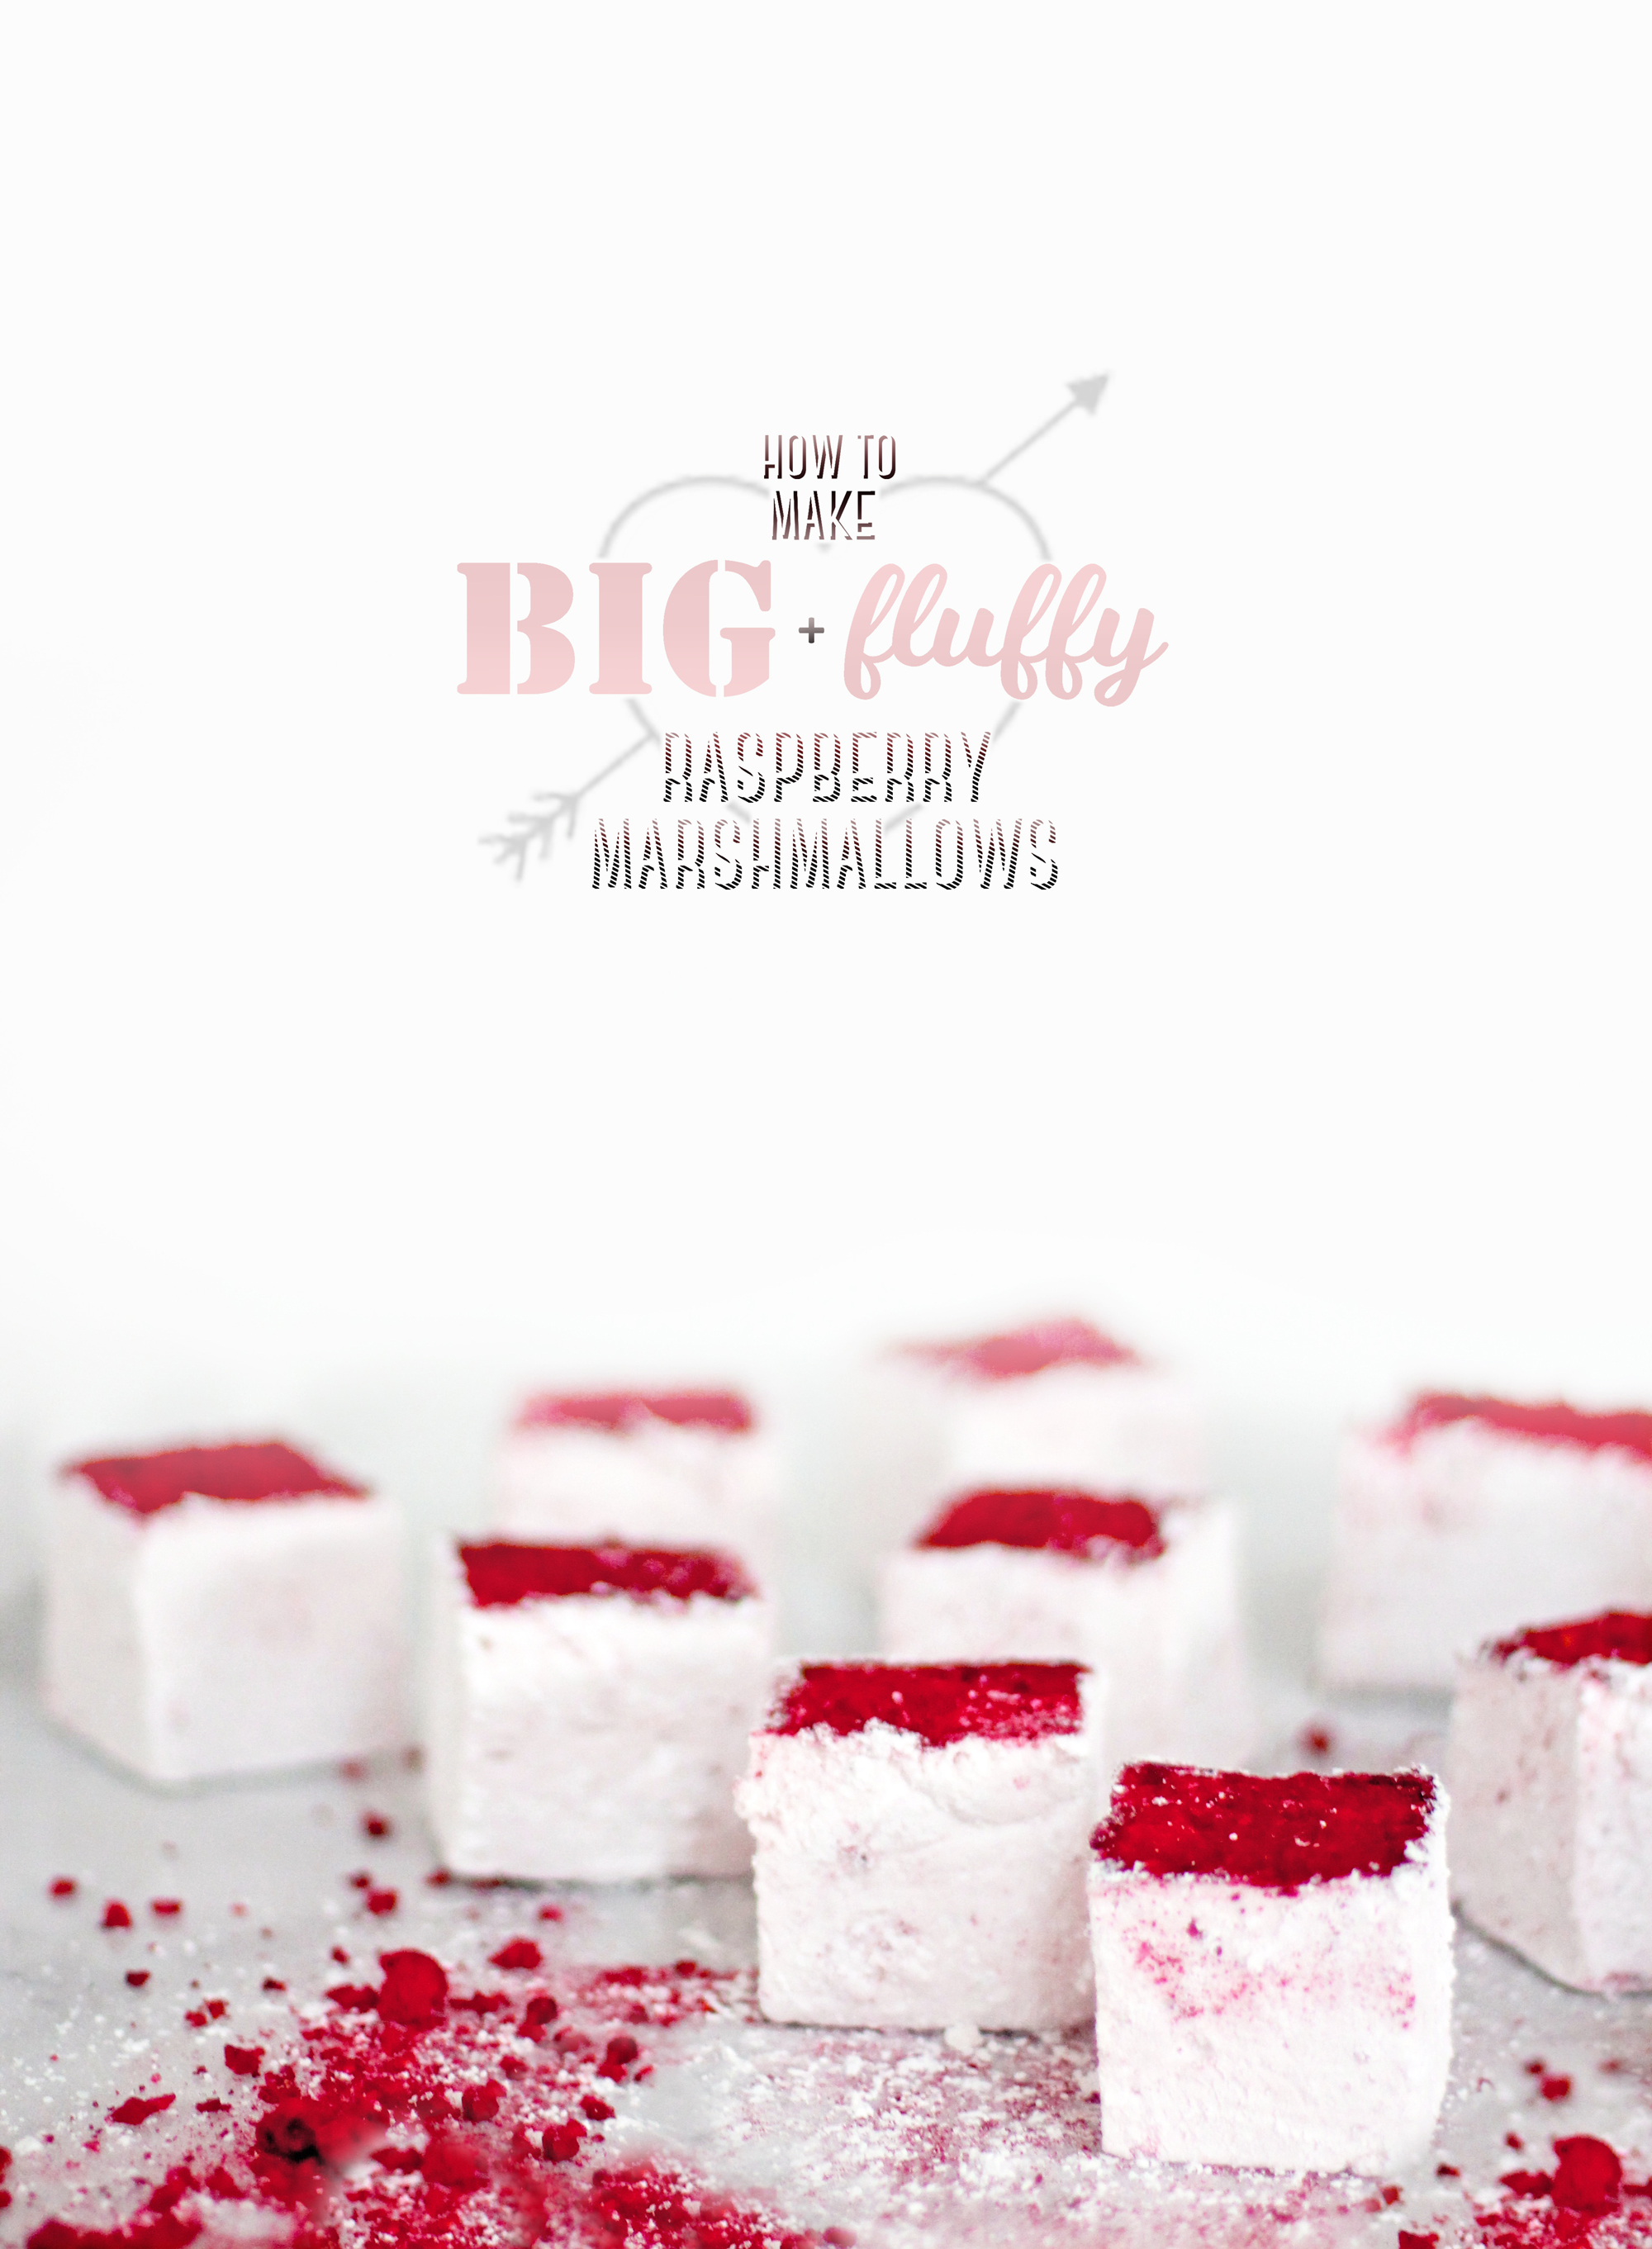 Big & Fluffy Homemade Raspberry Marshmallows (perfect for Valentine's Day!)